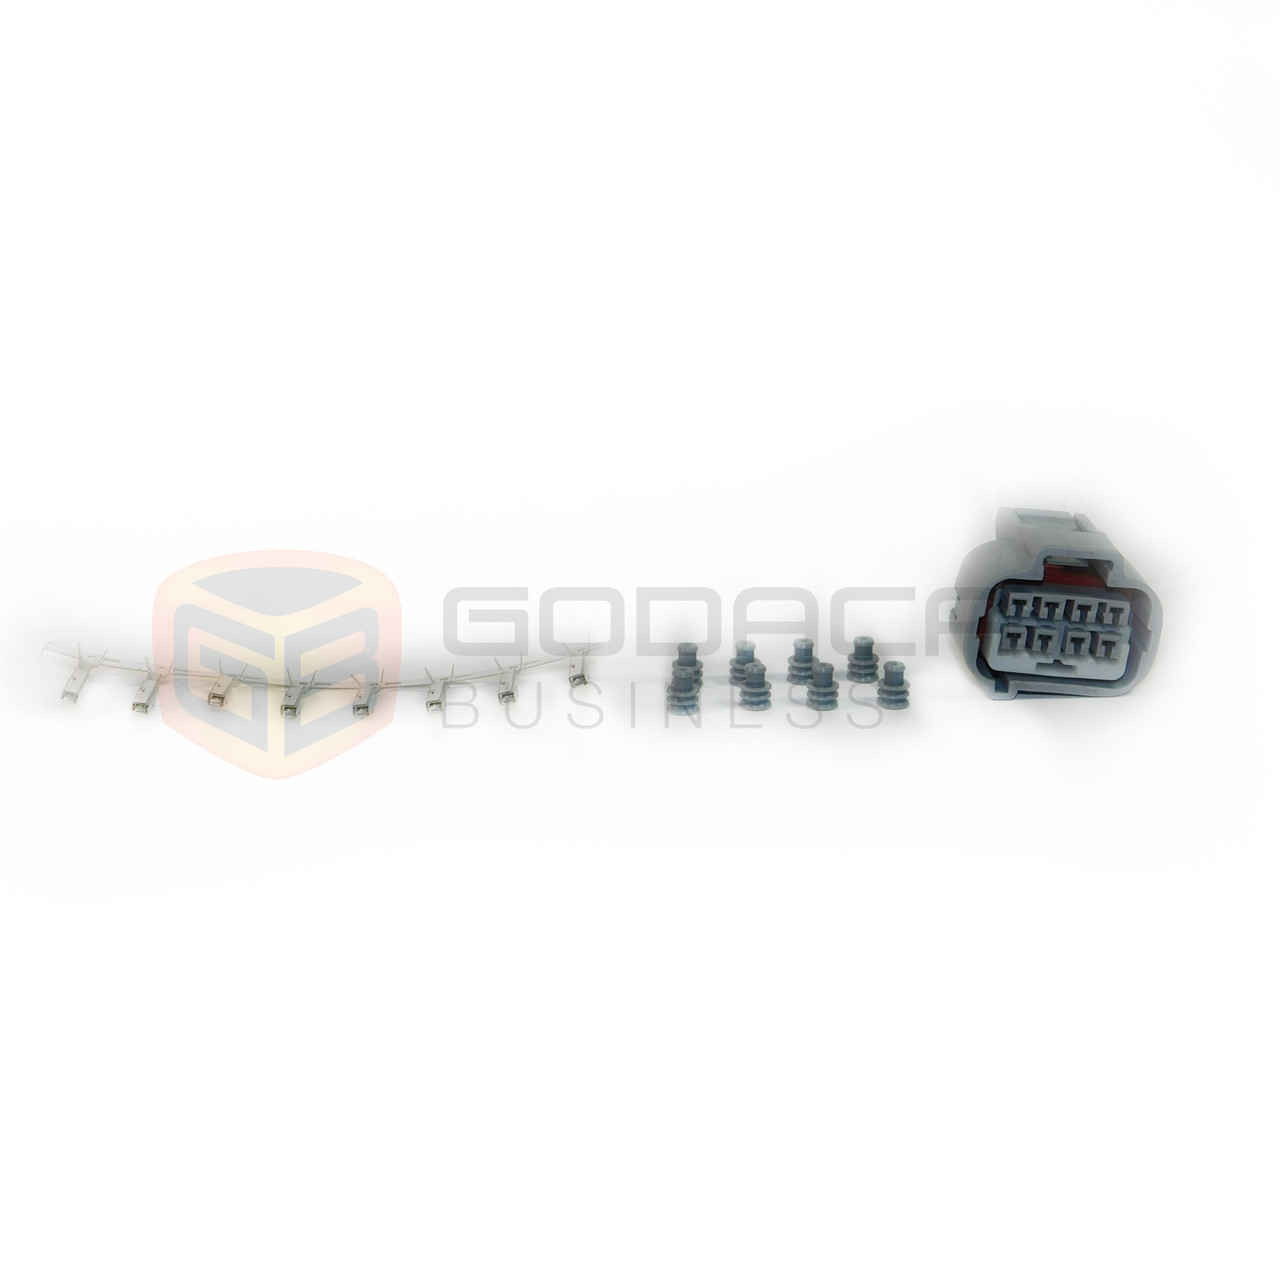 1x connector for toyota supra mk4 fusebox 90980 10897 w out wire godaca llc  [ 1280 x 1280 Pixel ]